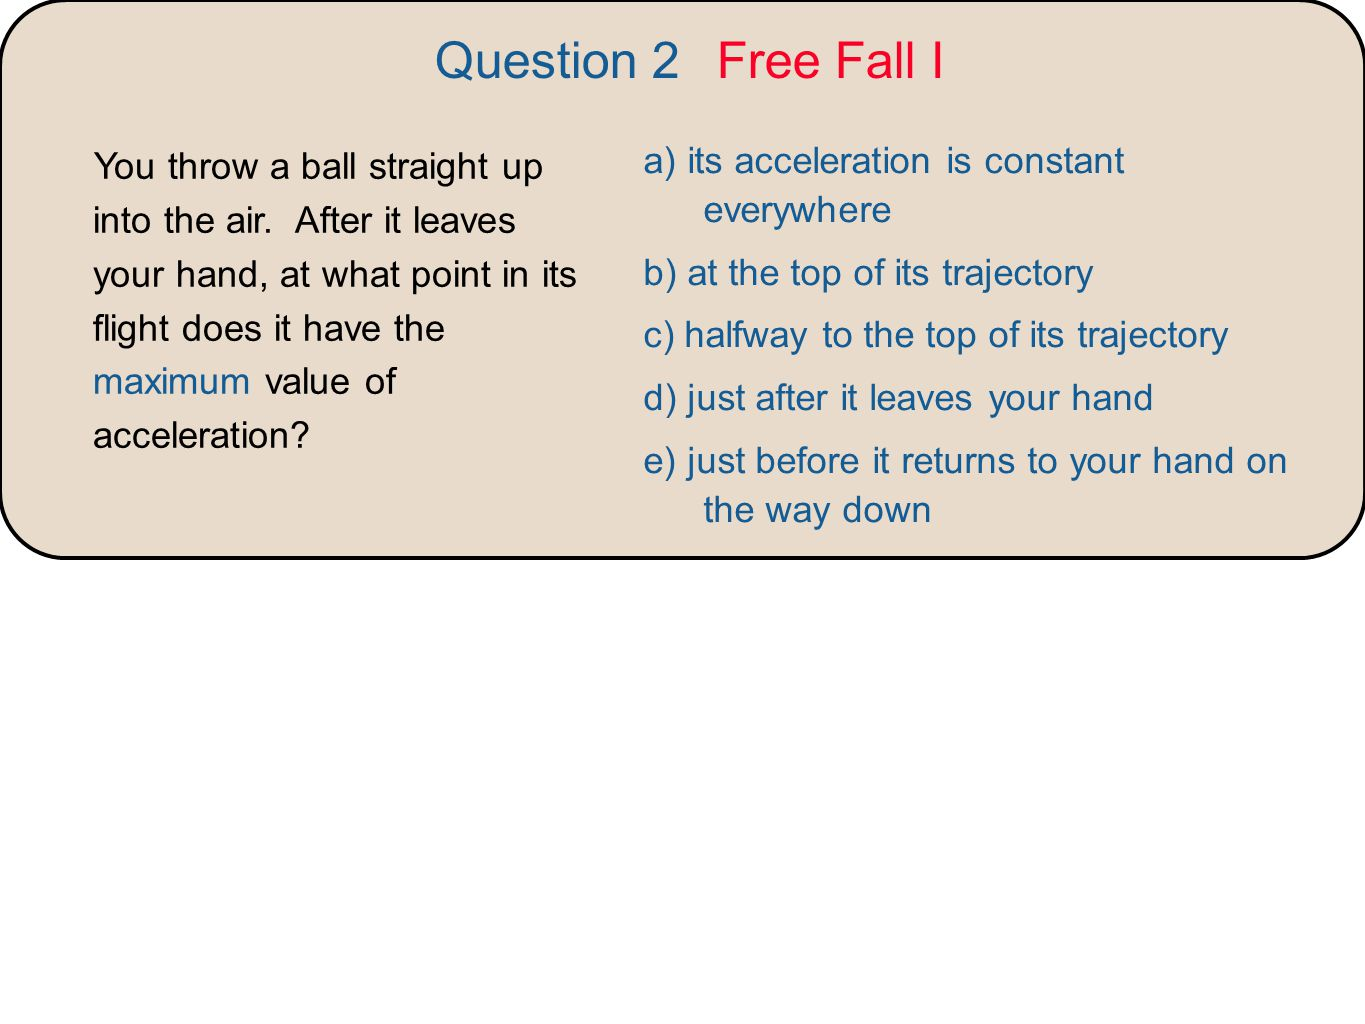 Question 2 Free Fall I